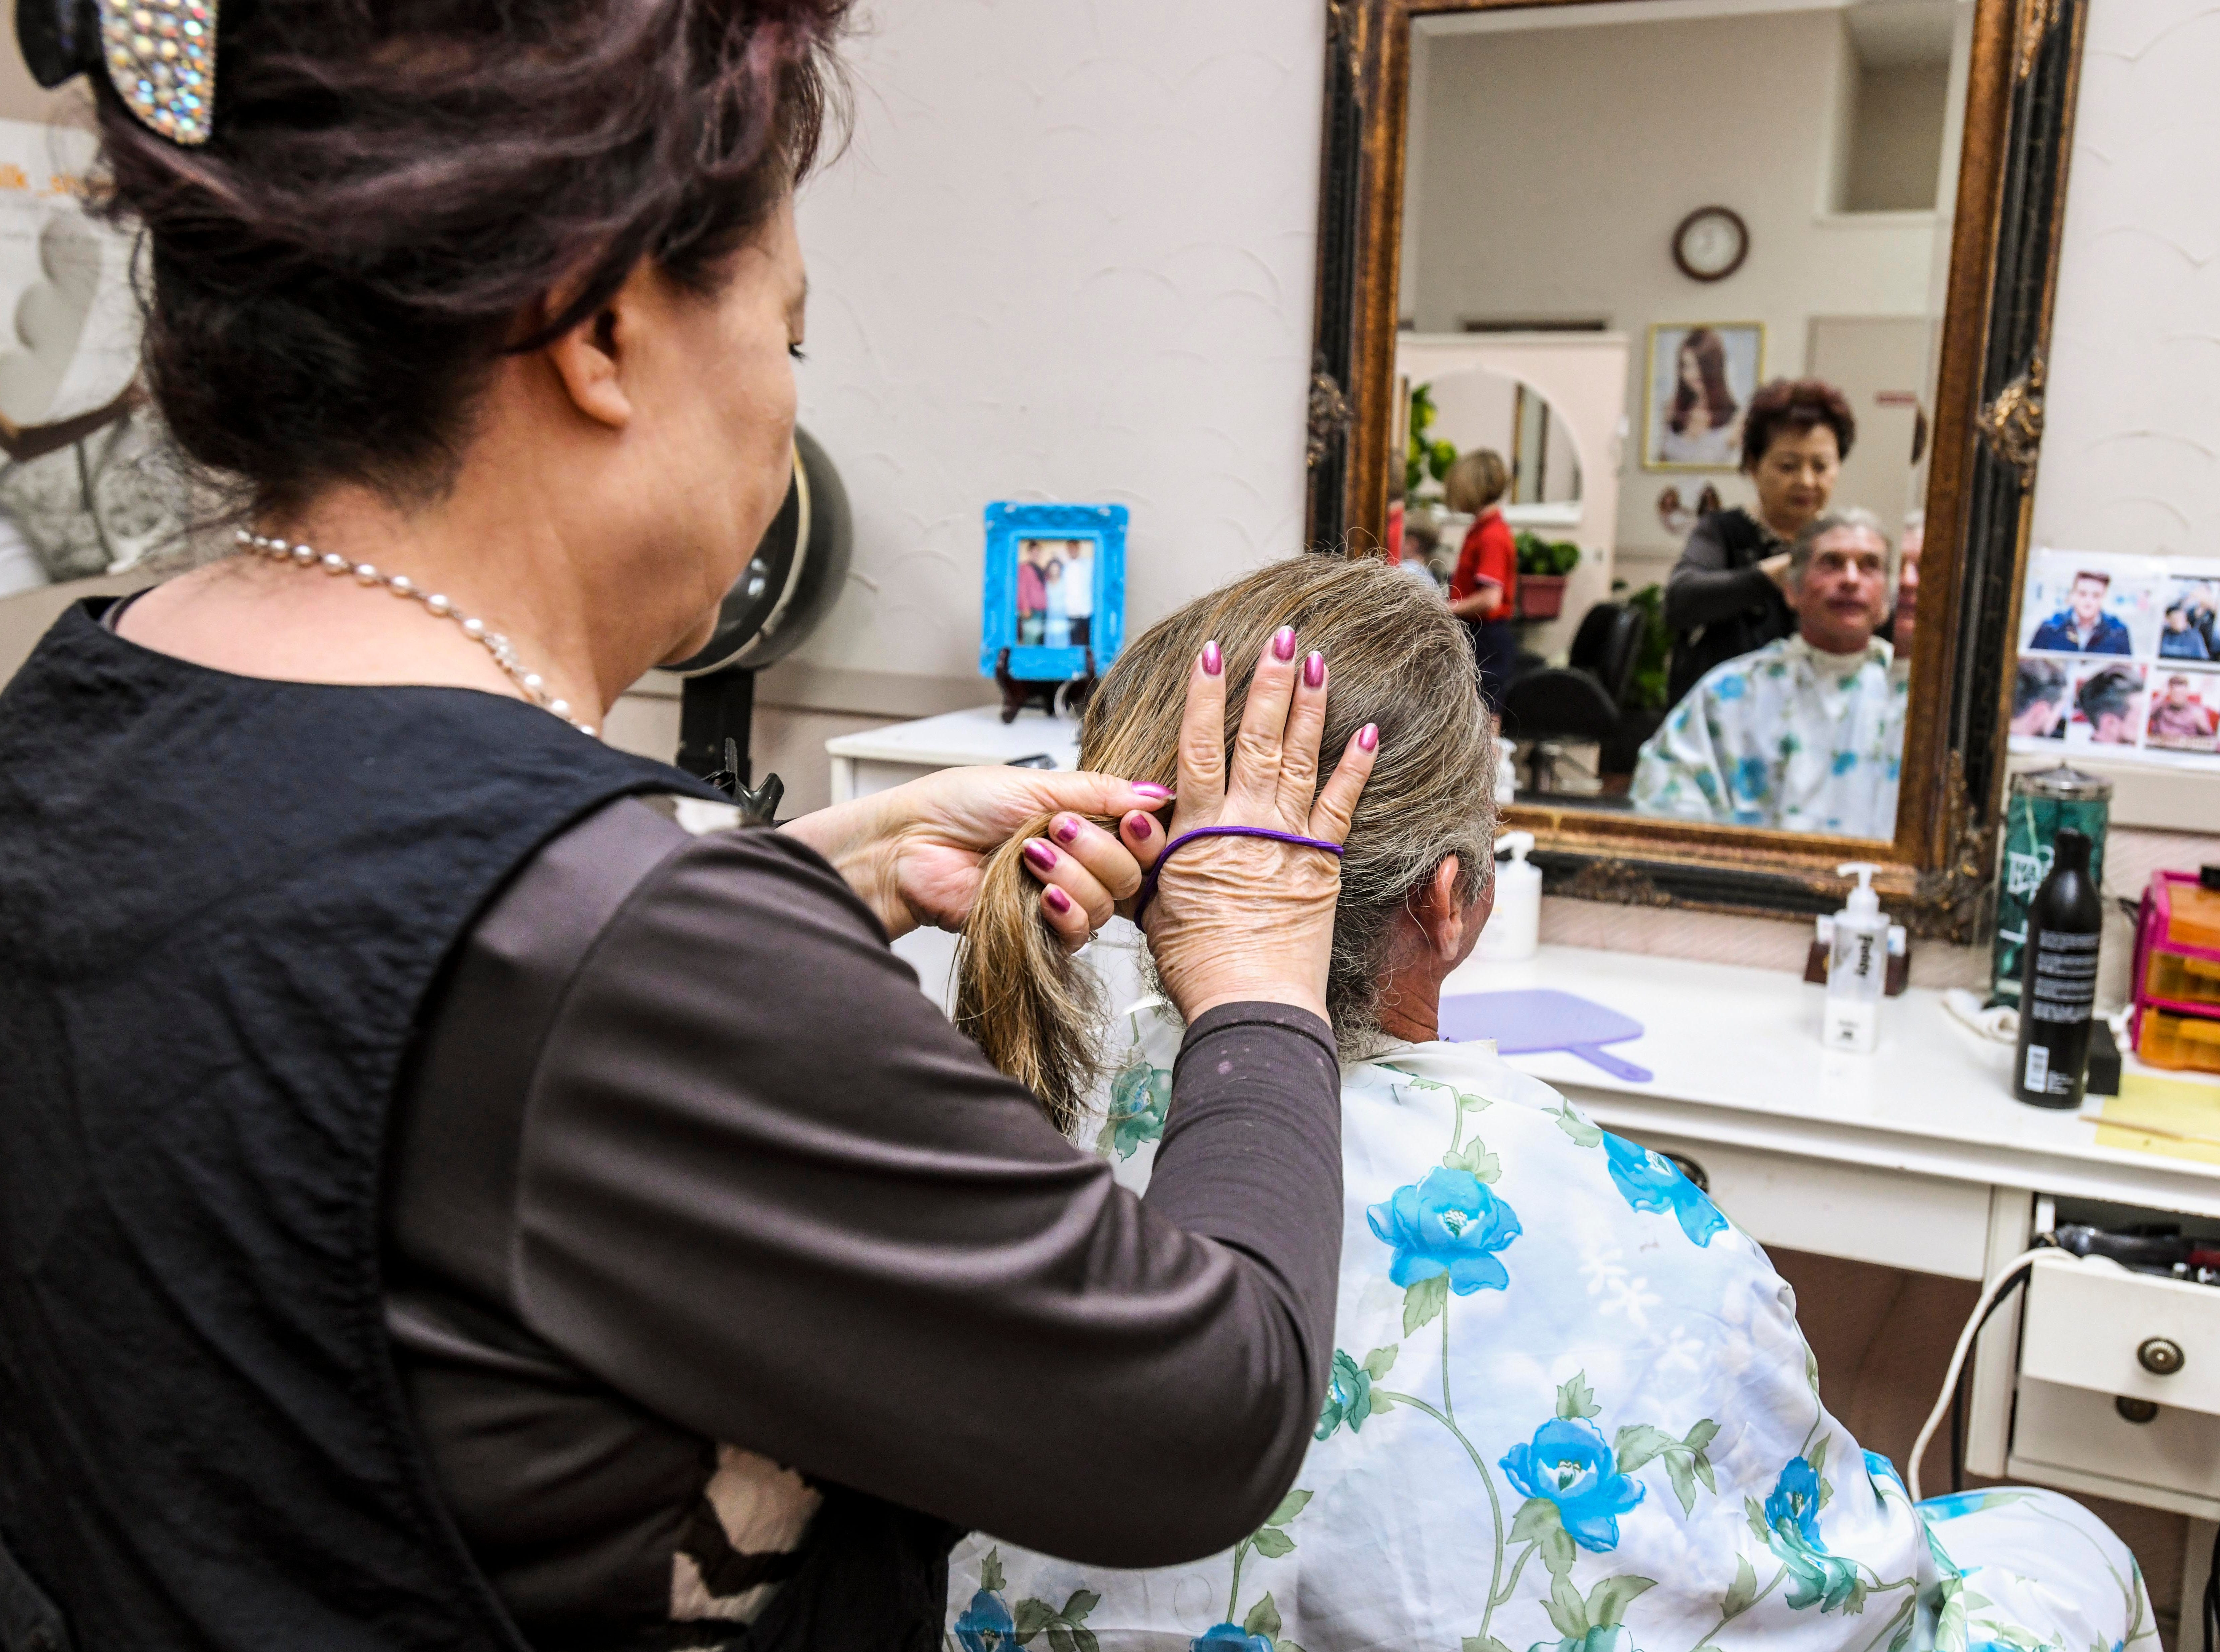 Suzzi Jung, standing, ties a long length of hair from Shepherd DeBenedictis in preparation to cutting off the ponytail at the Grace Beauty Shop in Tamuning on Wednesday, Feb. 6, 2019. DeBenedictis, and his daughter, Raylene DeBenedictis, 12, both had their hair cut, with the intention to donate their locks to Wigs for Kids and 360 Hair Inc., respectively, to be fabricated into wigs for people suffering from medical hair loss.